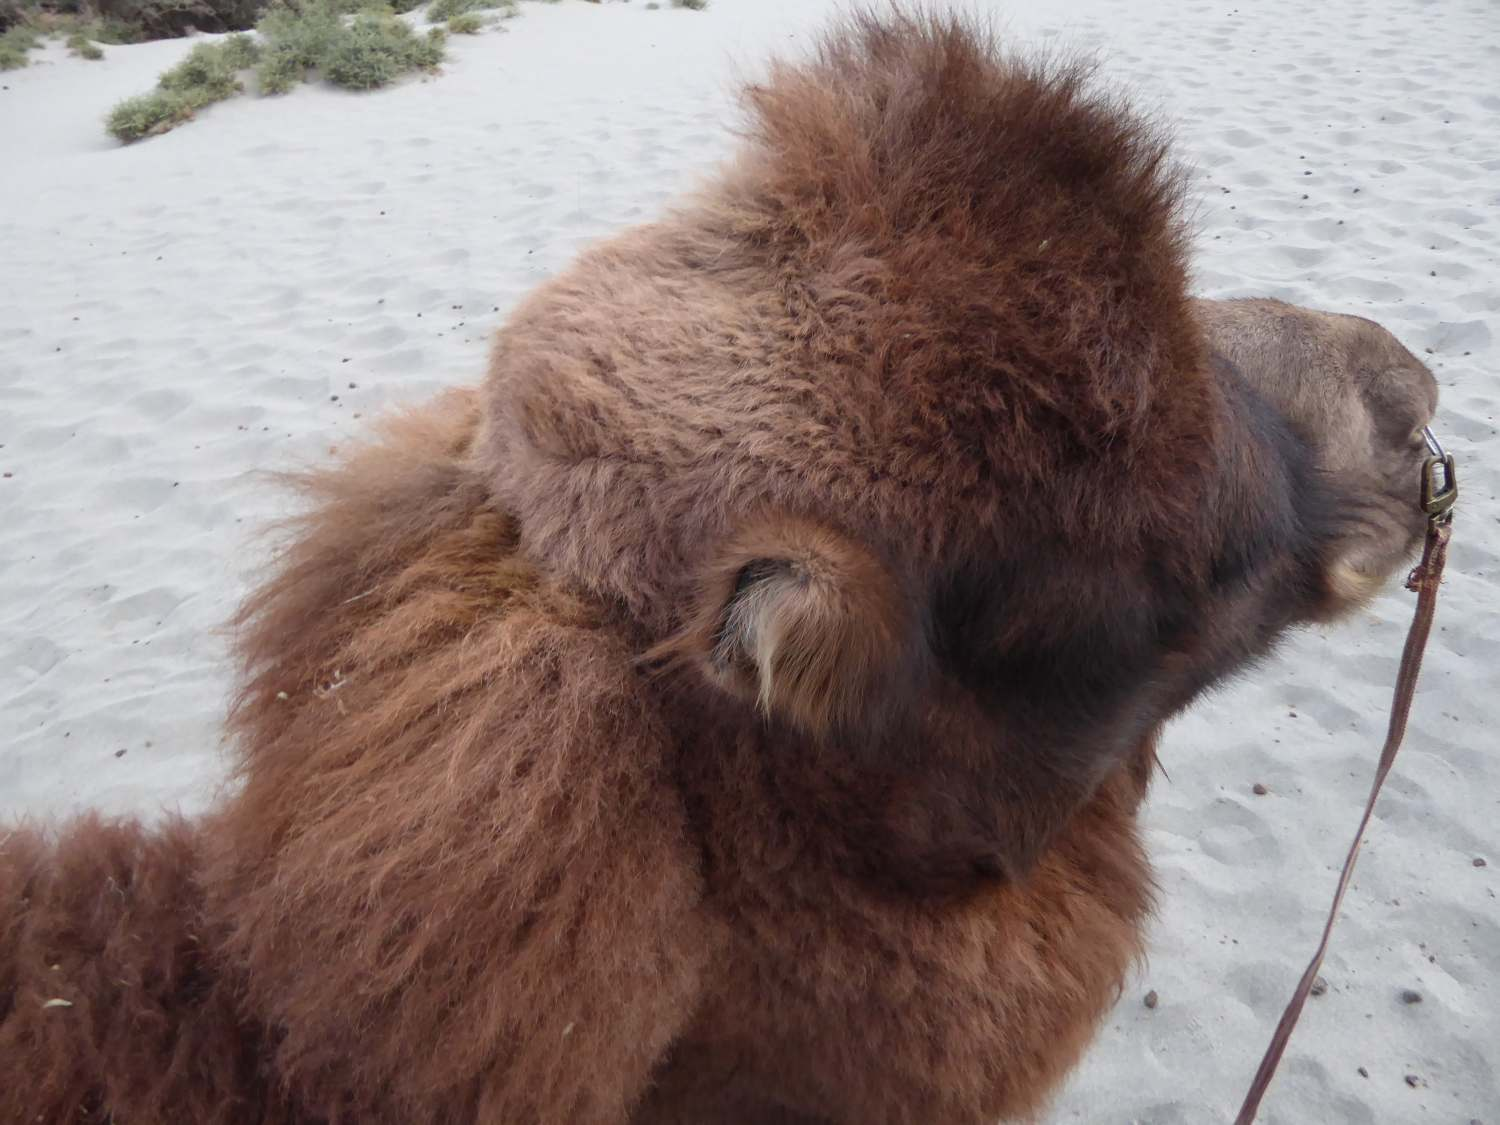 My own camel - I would love to take it home; just a treasure